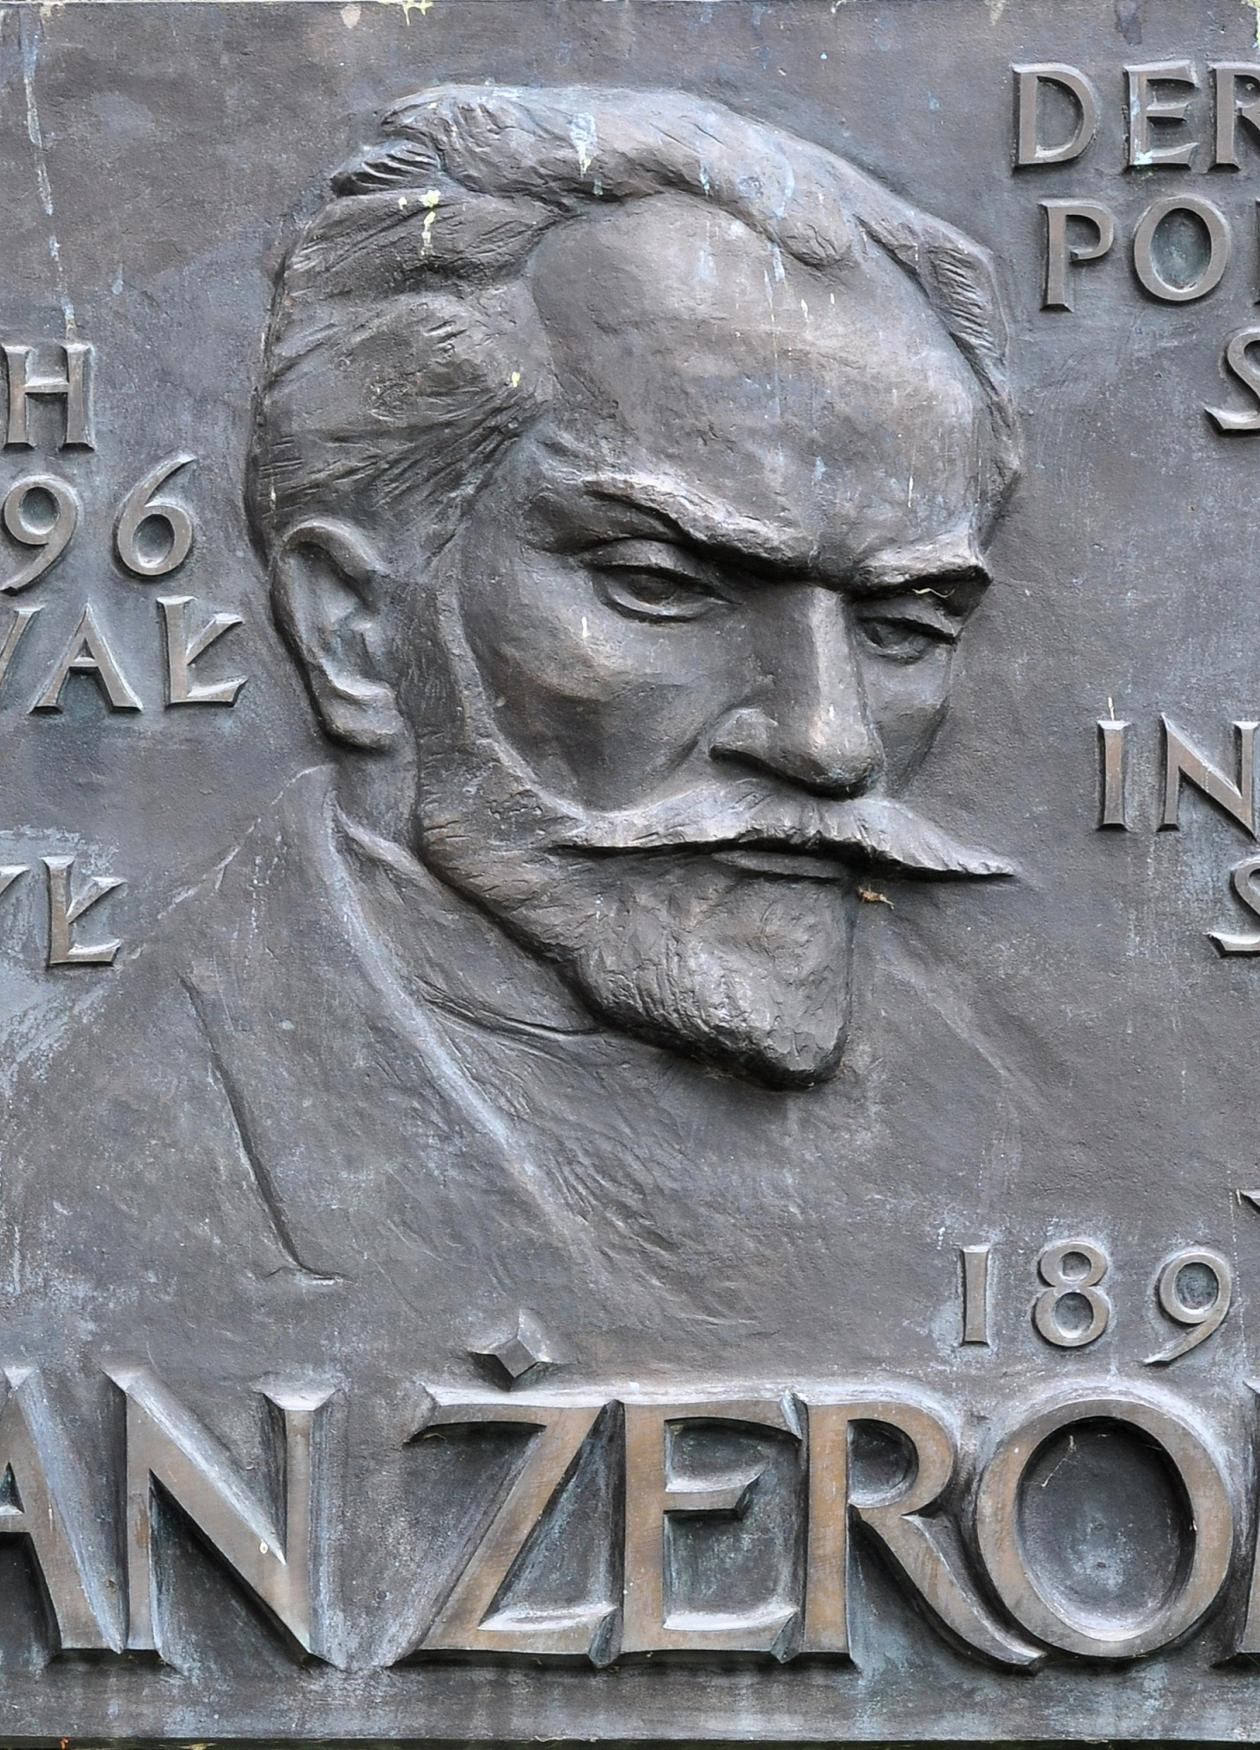 Grey engraved plaque of Stefan Zeromski.